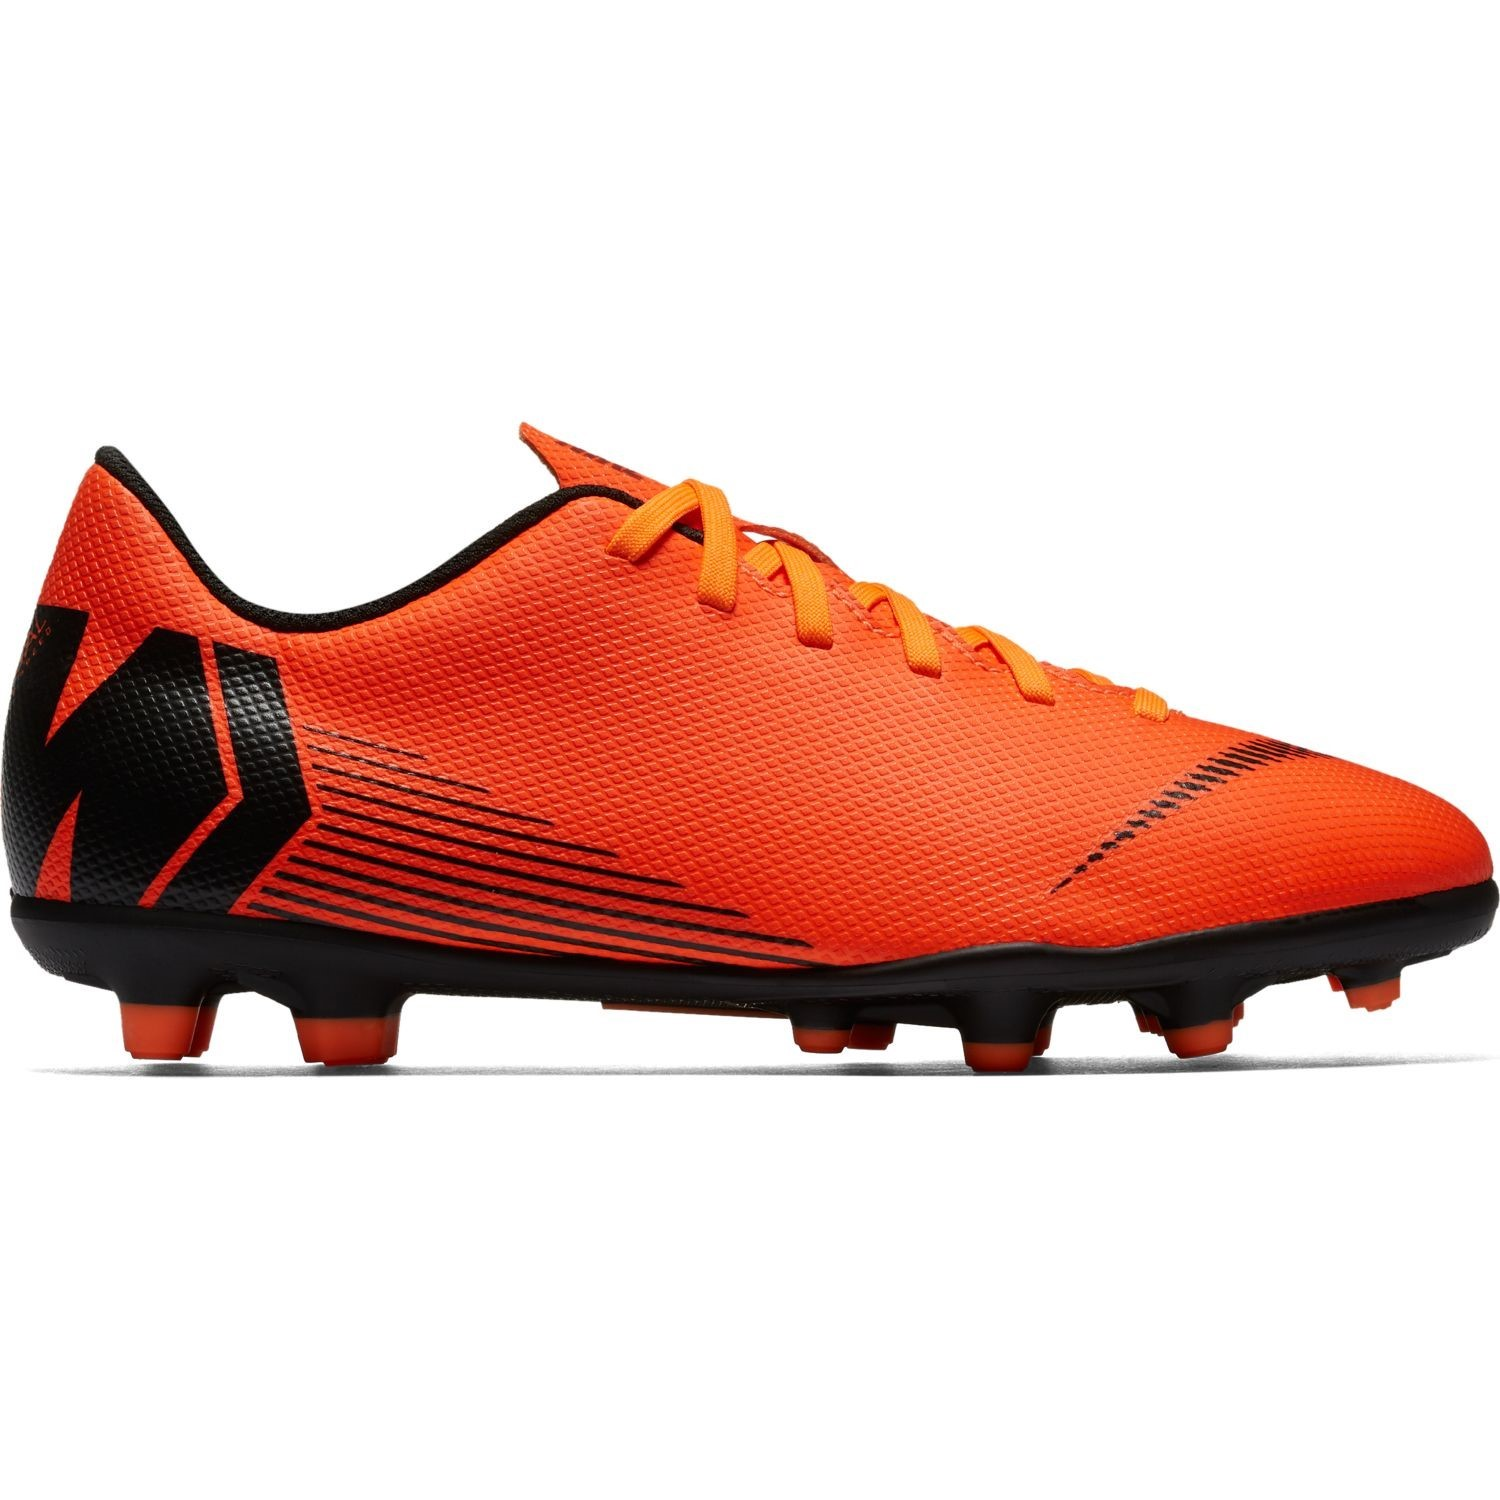 on sale f824a 5c7c3 Nike Jr Mercurial Vapor XII Club MG - Kids Football Boots - Total  Orange Black